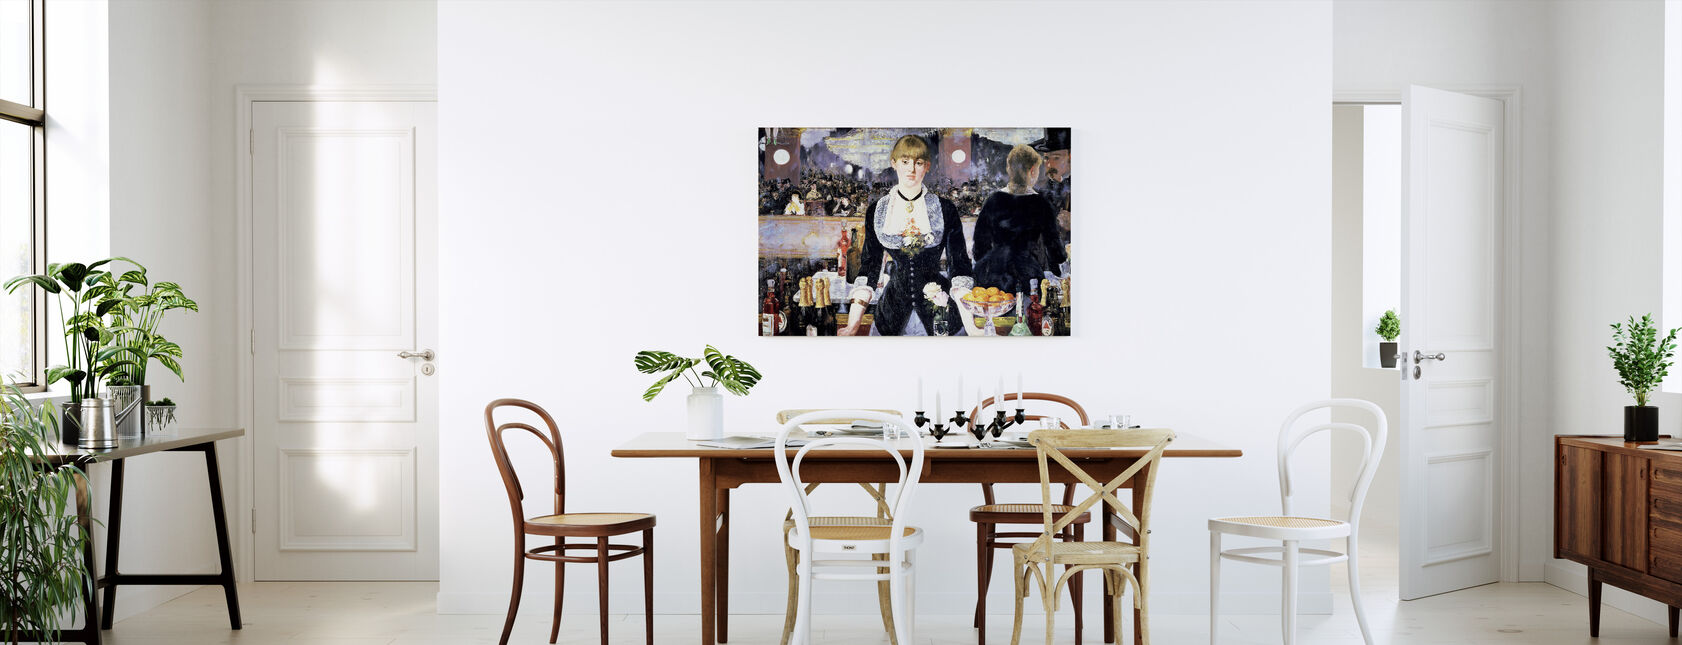 Bar at Folies-Bergere, Edouard Manet - Canvas print - Kitchen